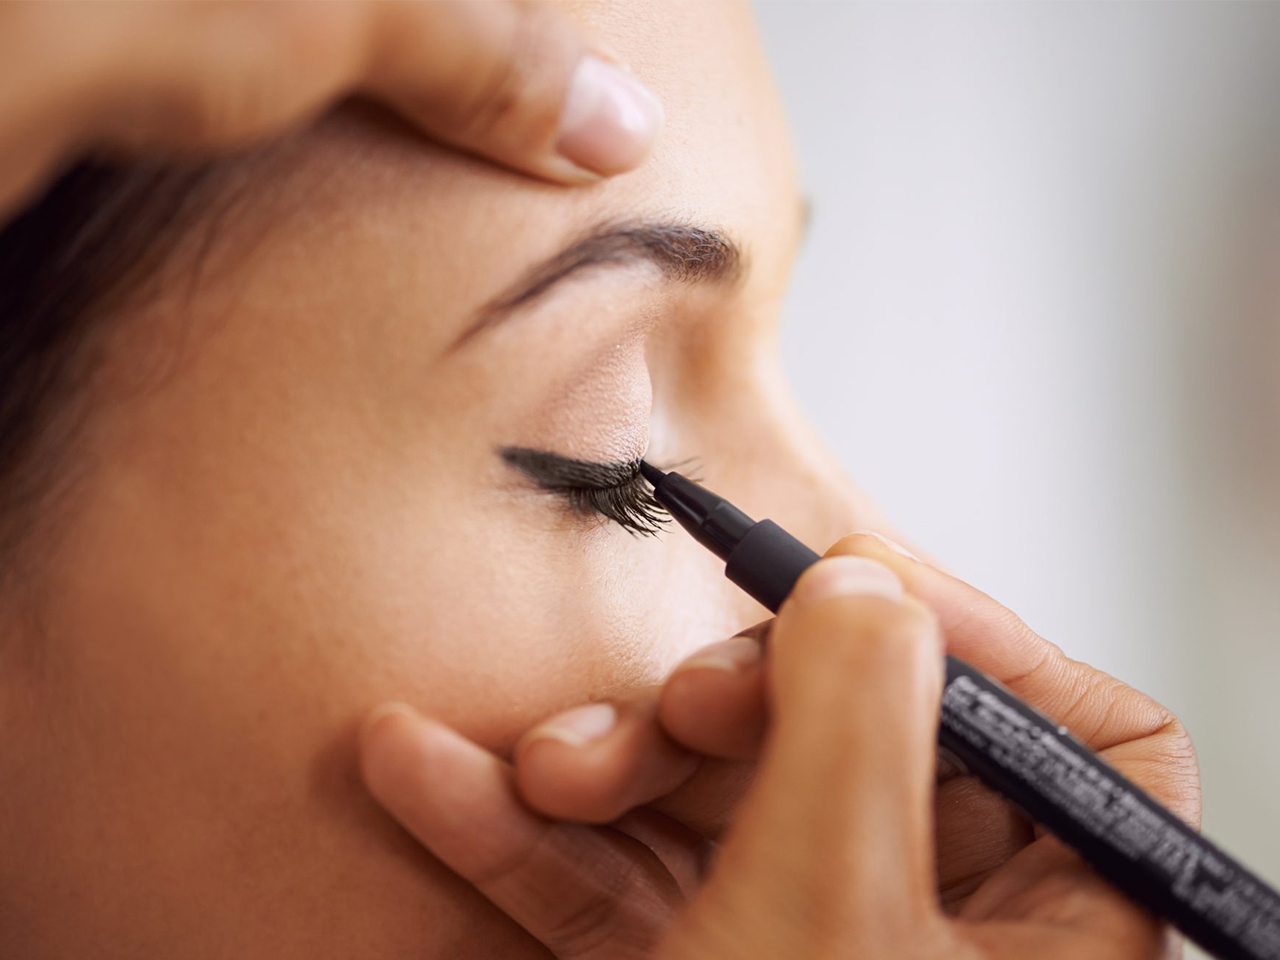 A woman applies liquid eyeliner to an eyelid for a piece on how to apply liquid eyeliner.